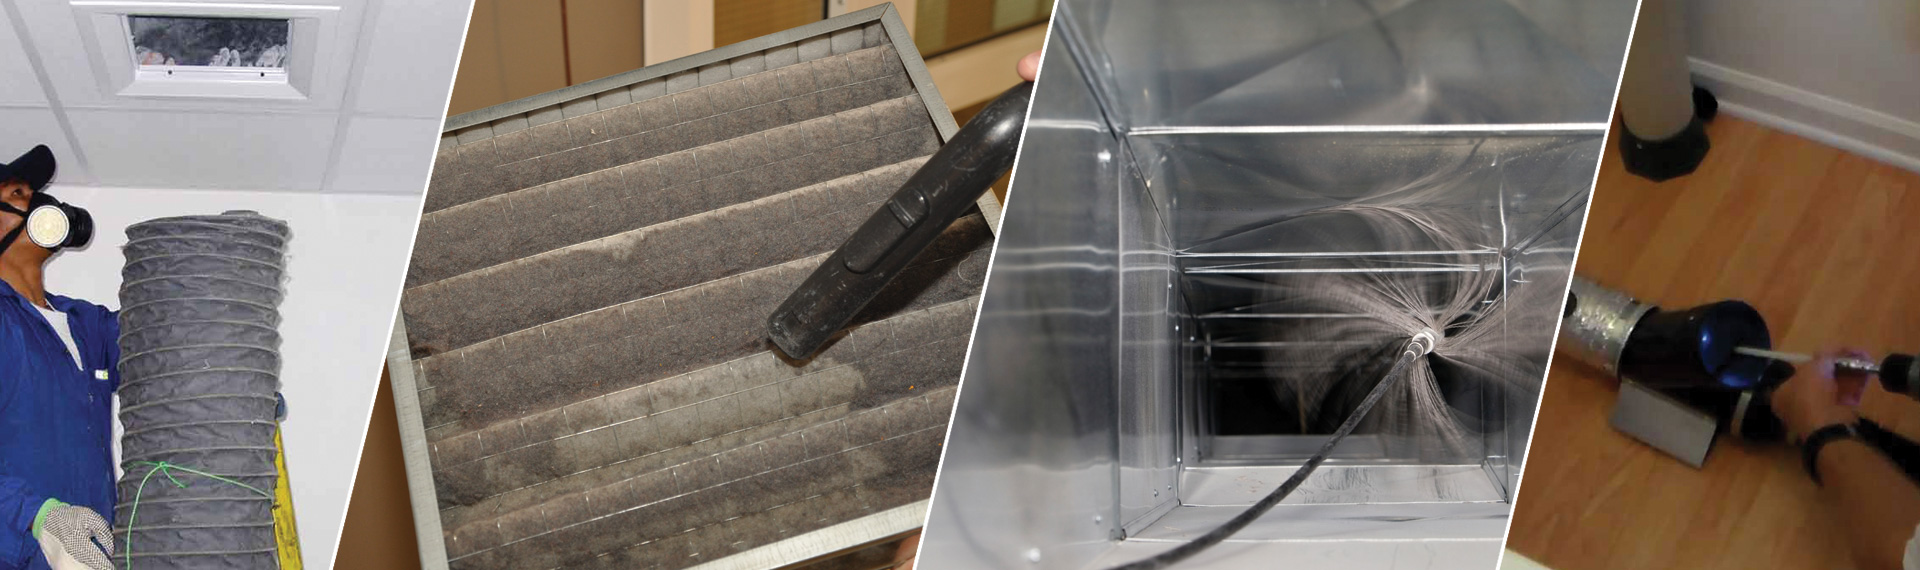 Reliable Air Duct Cleaning Beverly Hills CA